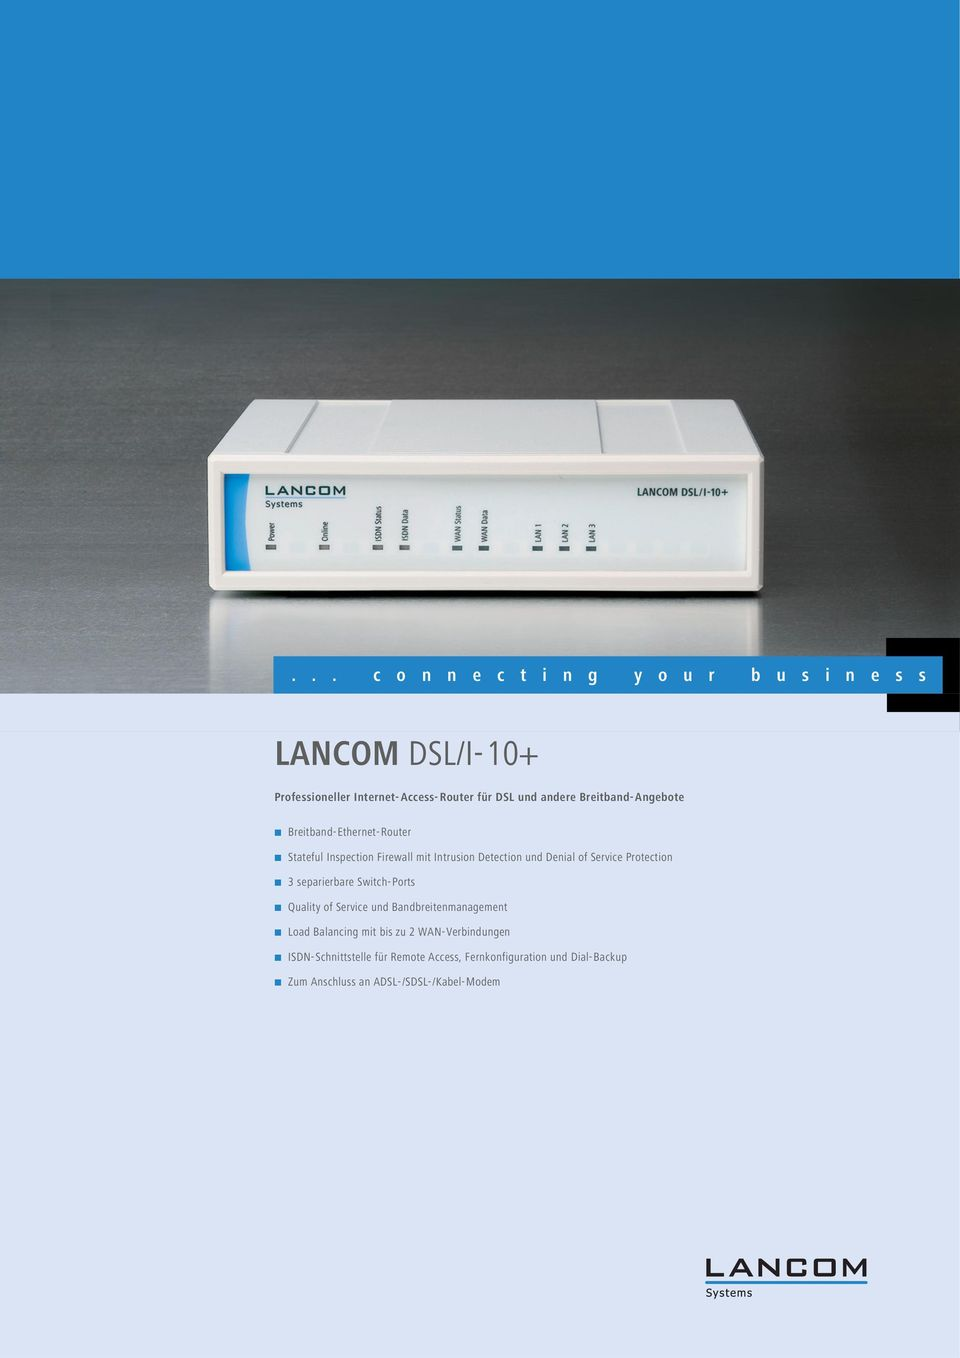 Service Protection 3 separierbare Switch-Ports Quality of Service und Bandbreitenmanagement Load Balancing mit bis zu 2